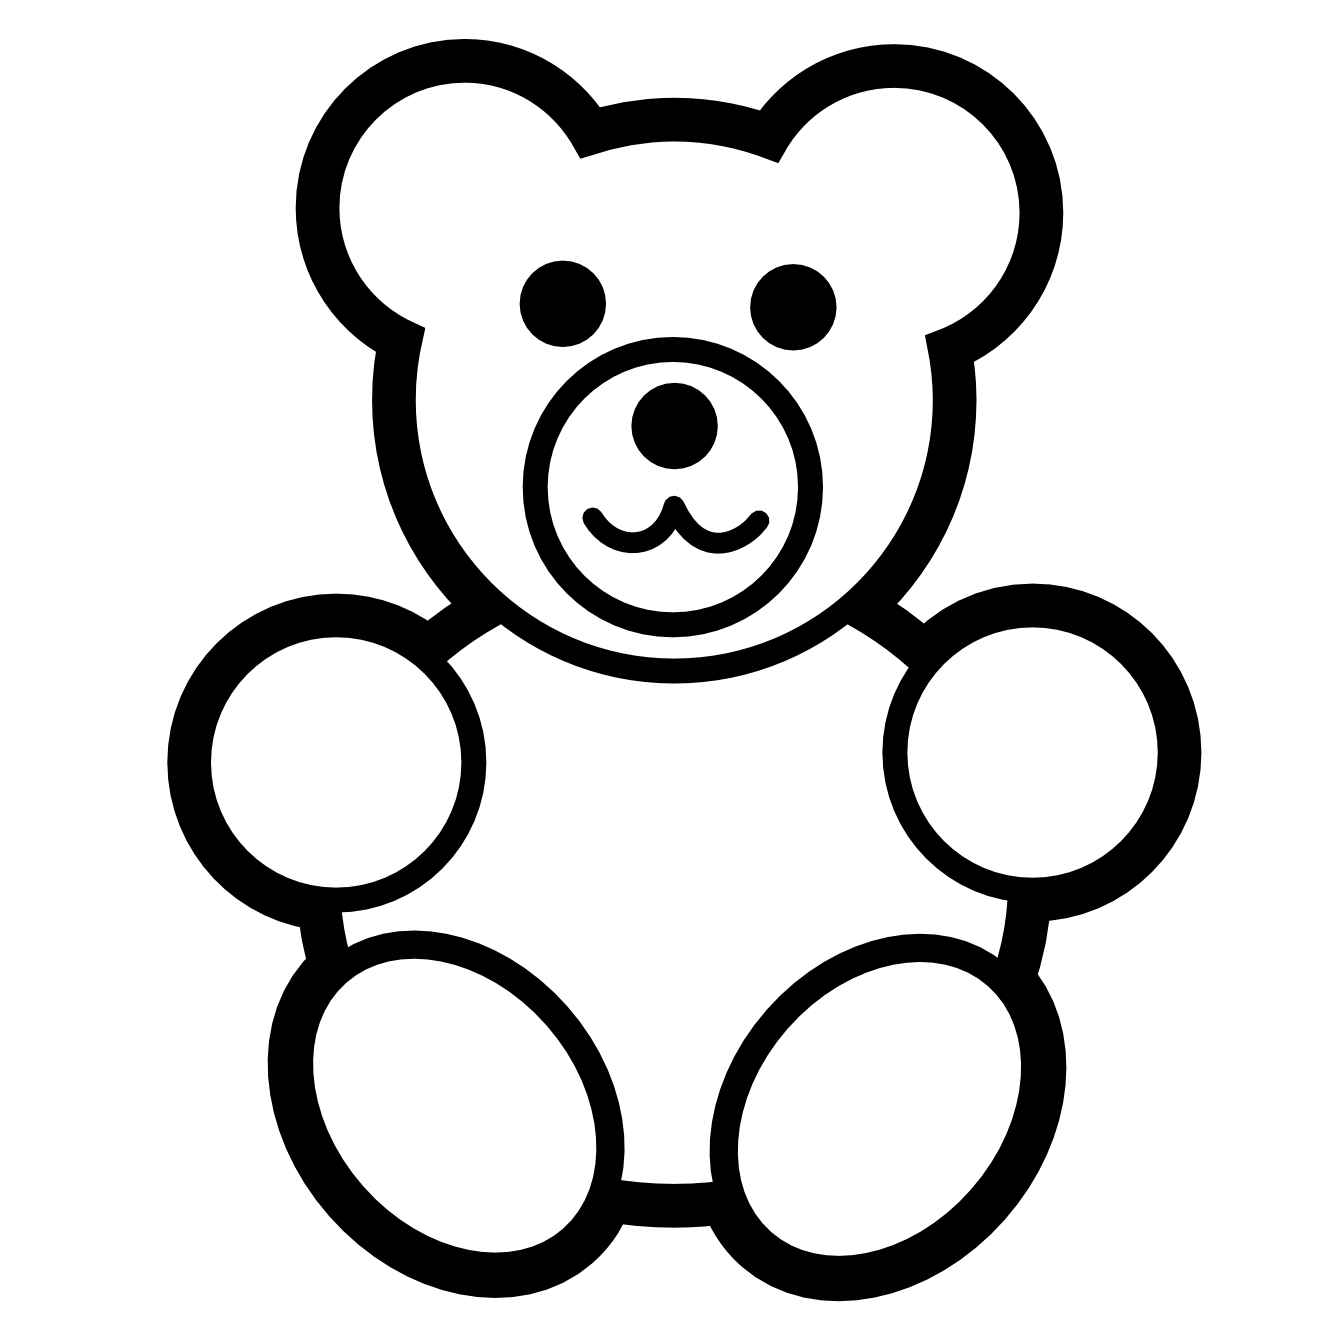 Paw clip art black and white. Christmas teddy bear clipart